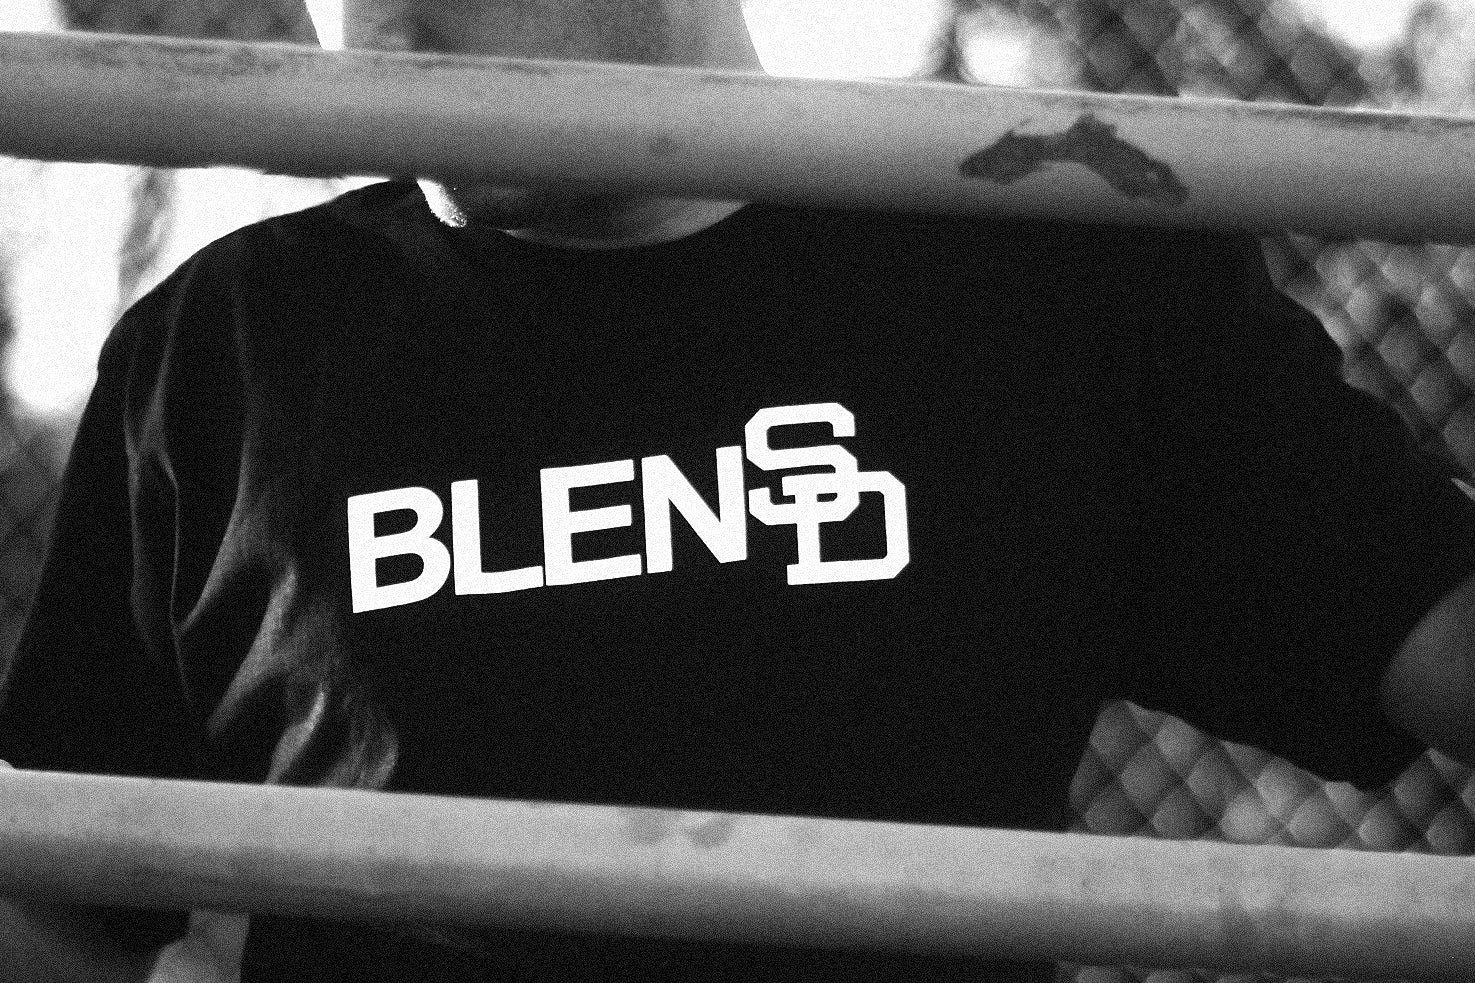 Blends San Diego All-Star Weekend T-Shirt